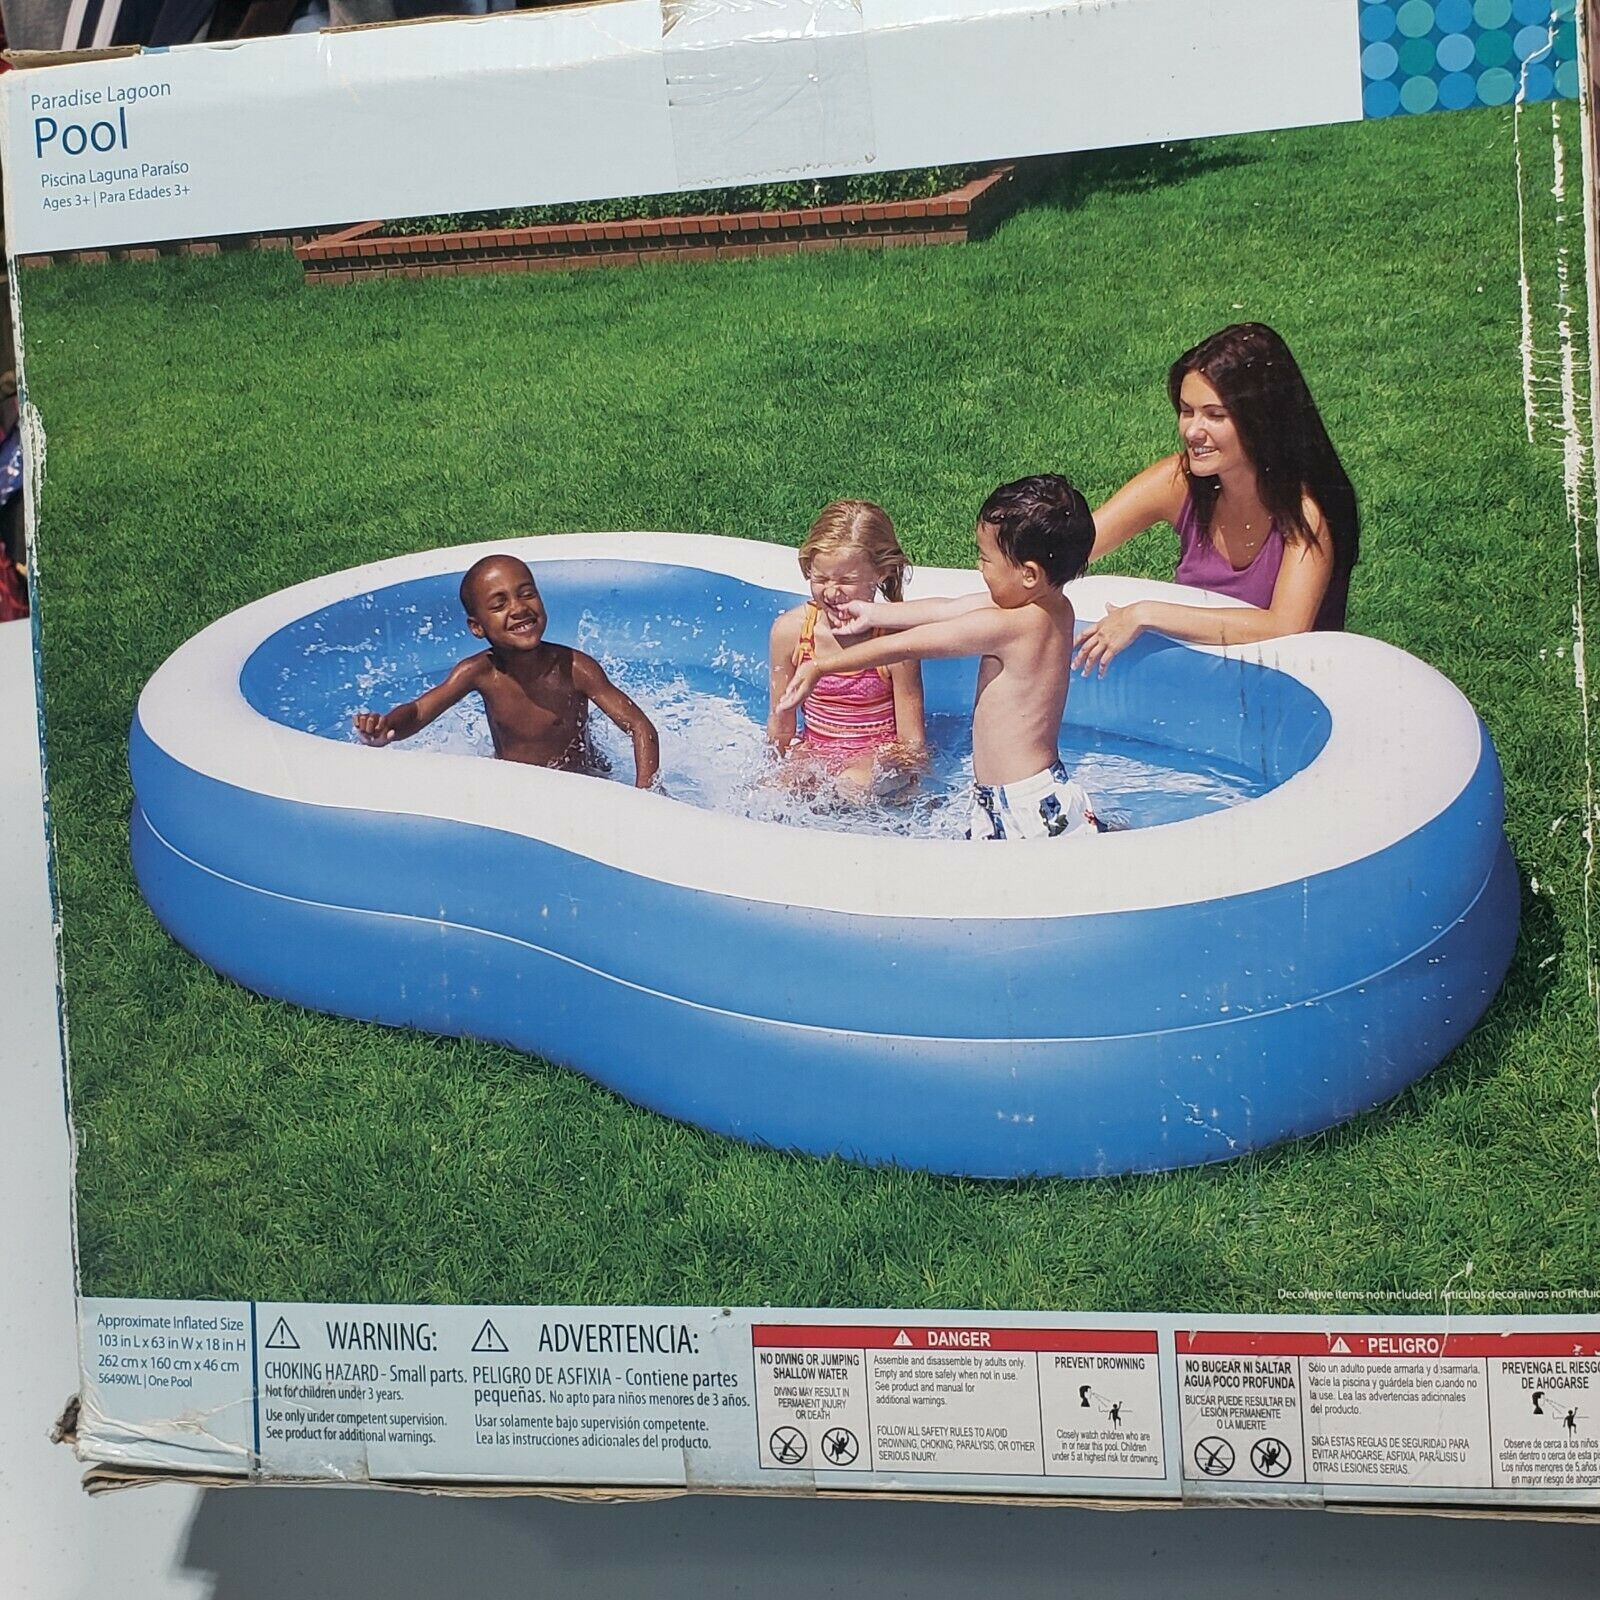 Paradise Lagoon Inflatable Pool 103 in L x 63 in W 18 in H 151 gal